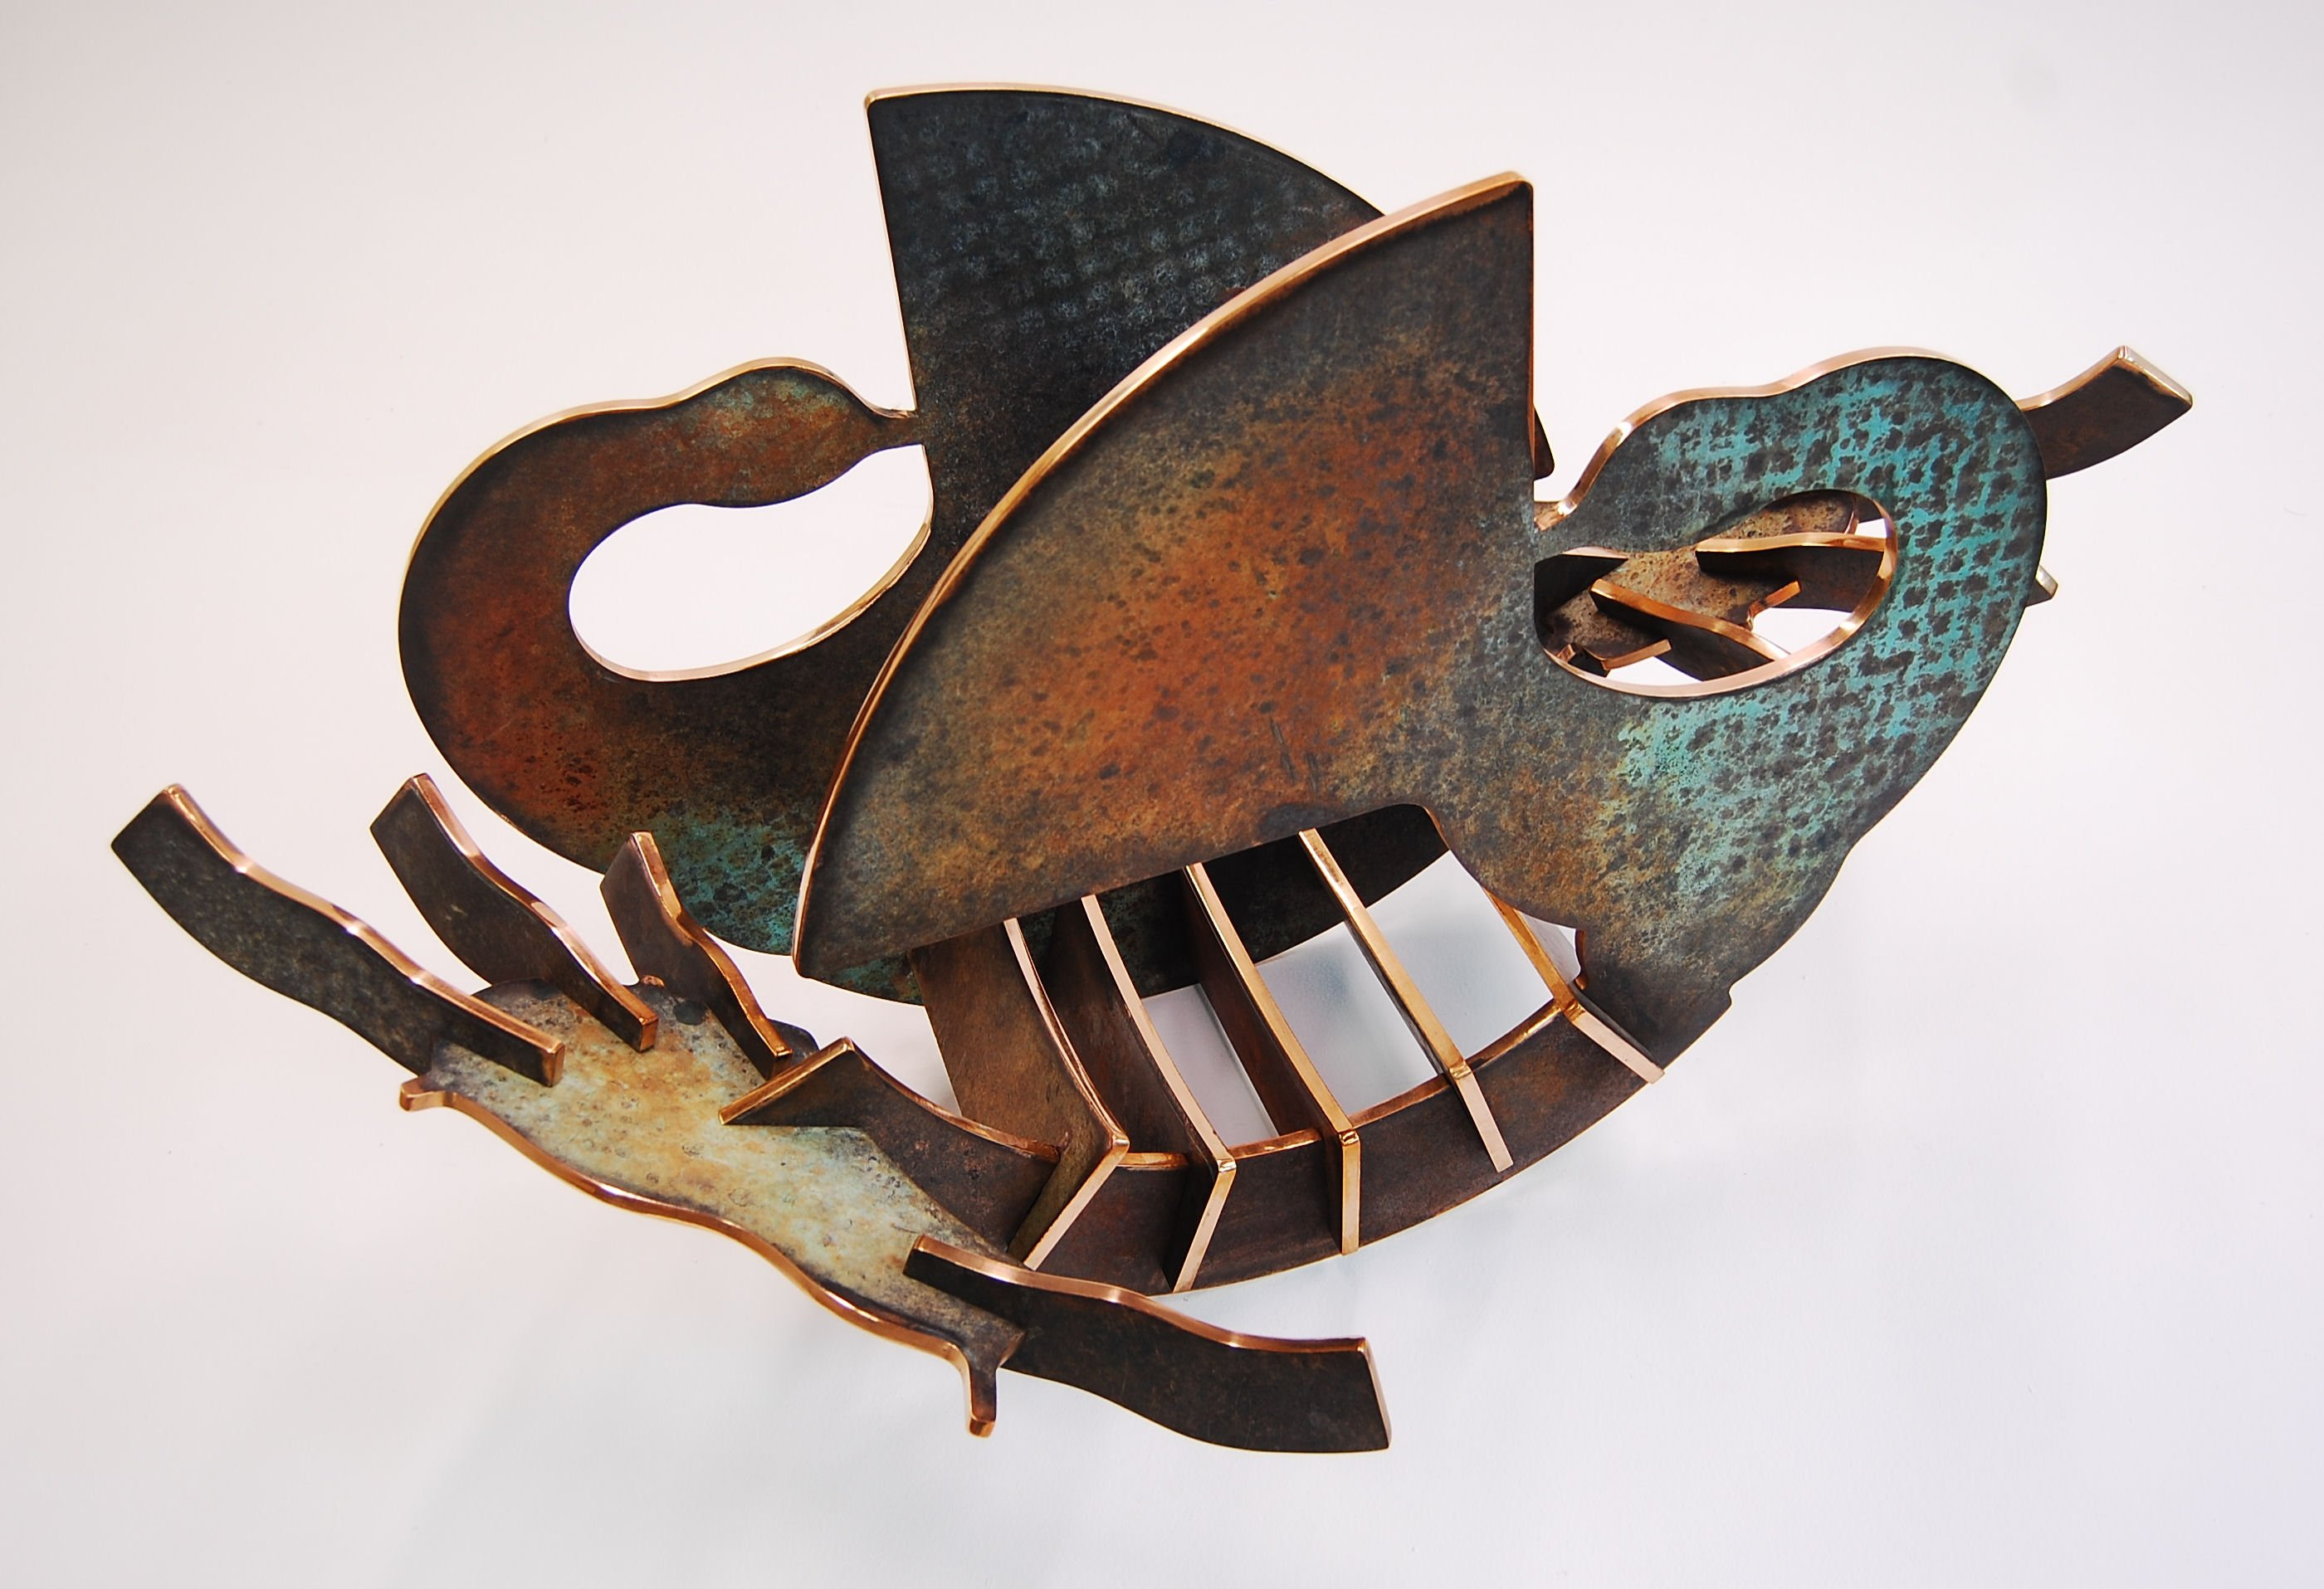 """In Retrospect - 2011, Fabricated Bronze with Patina, 23"""" x 43"""" x 26"""""""